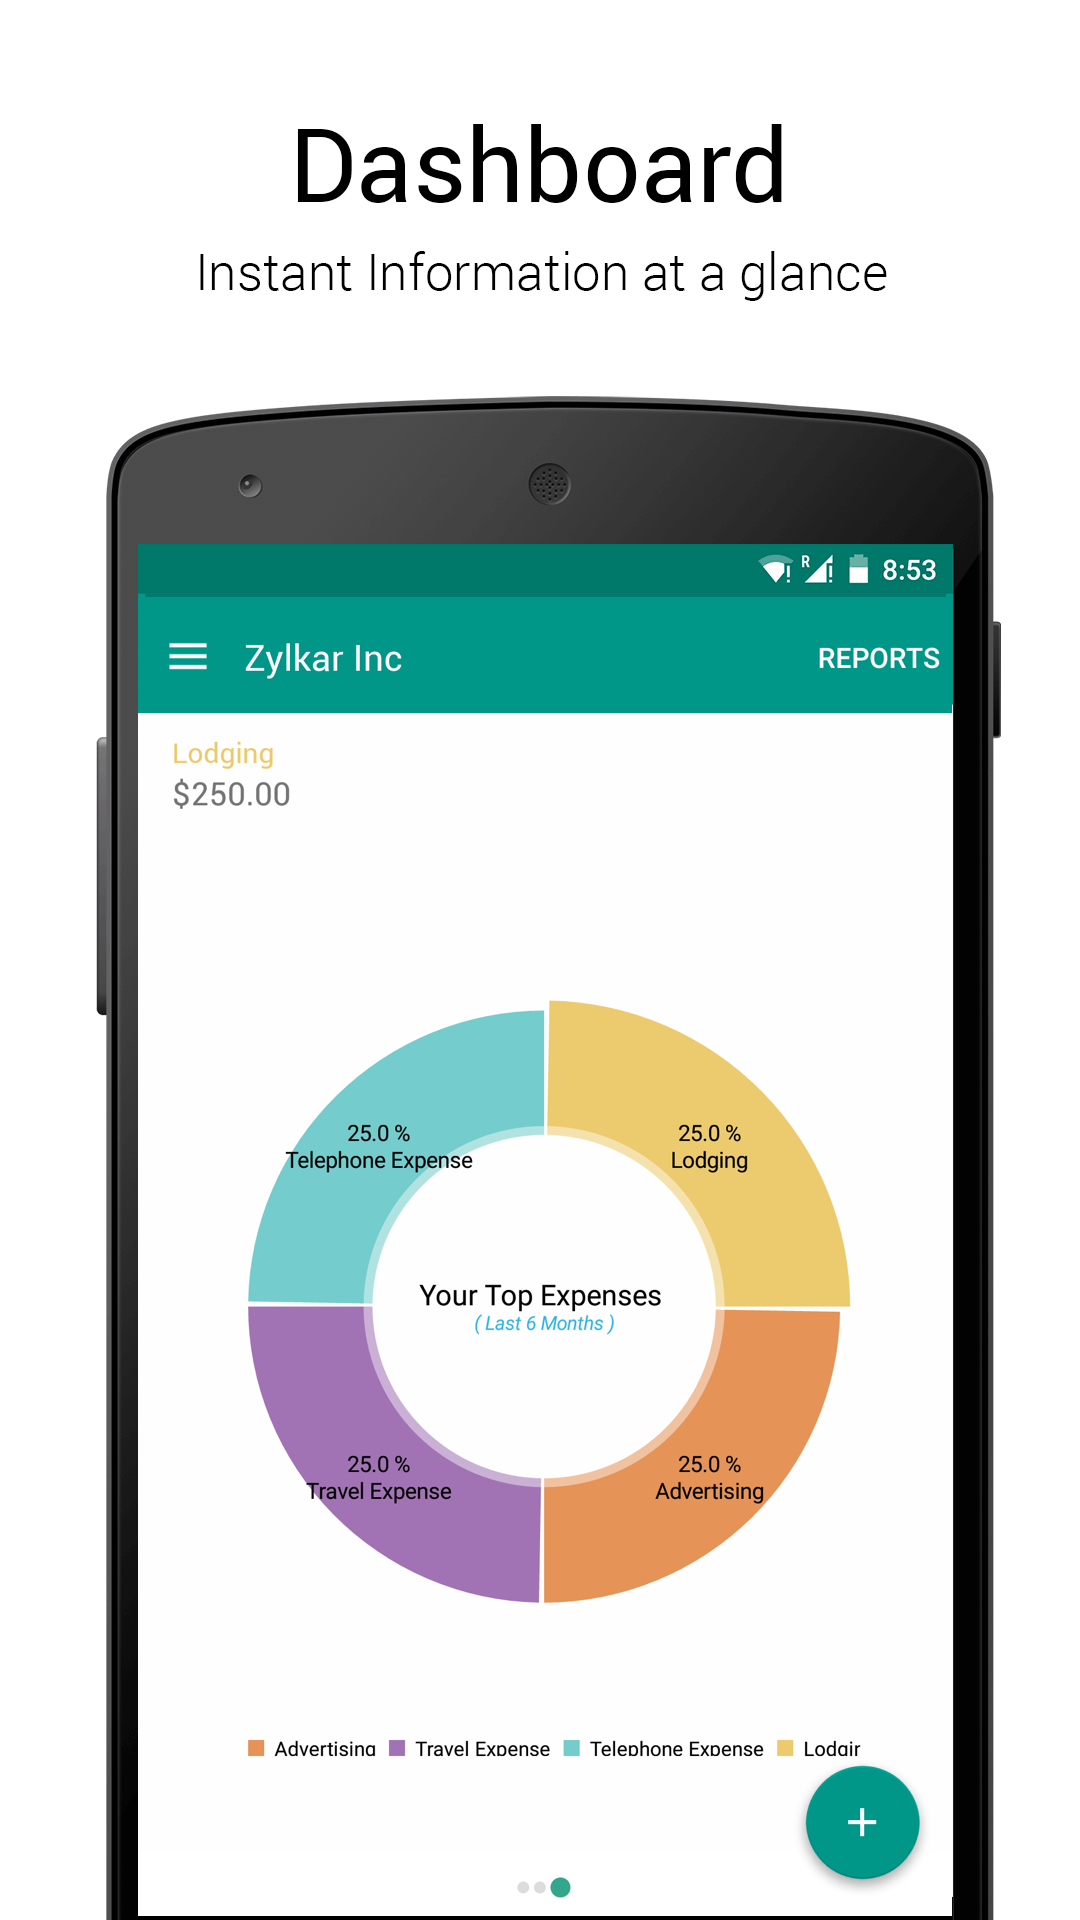 Amazoncom Invoice Time Tracking Zoho Appstore For Android - Free invoicing software download women's online clothing stores